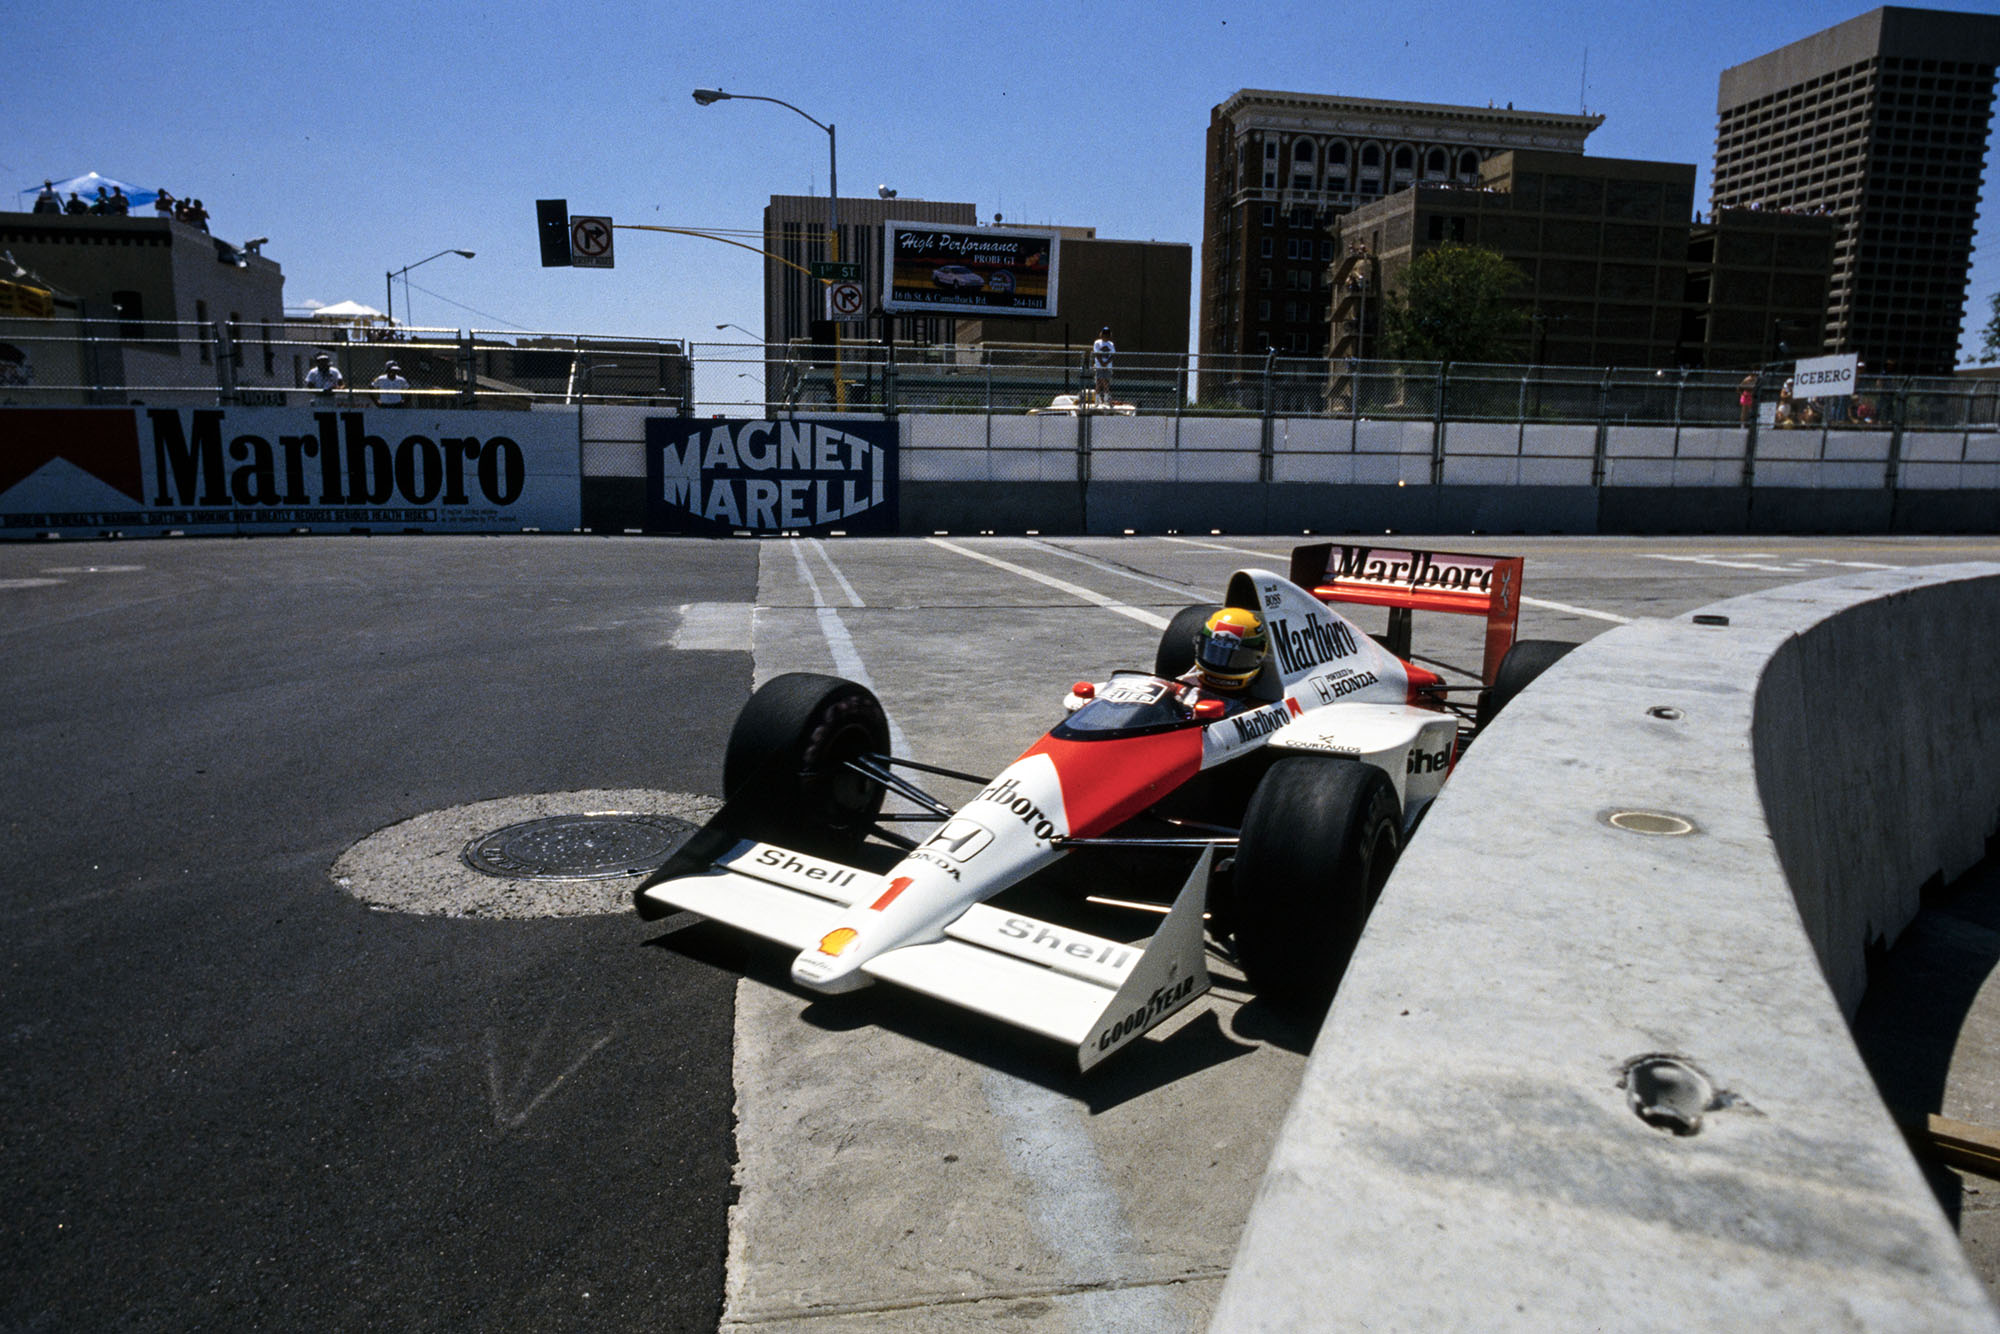 1989 US GP Senna